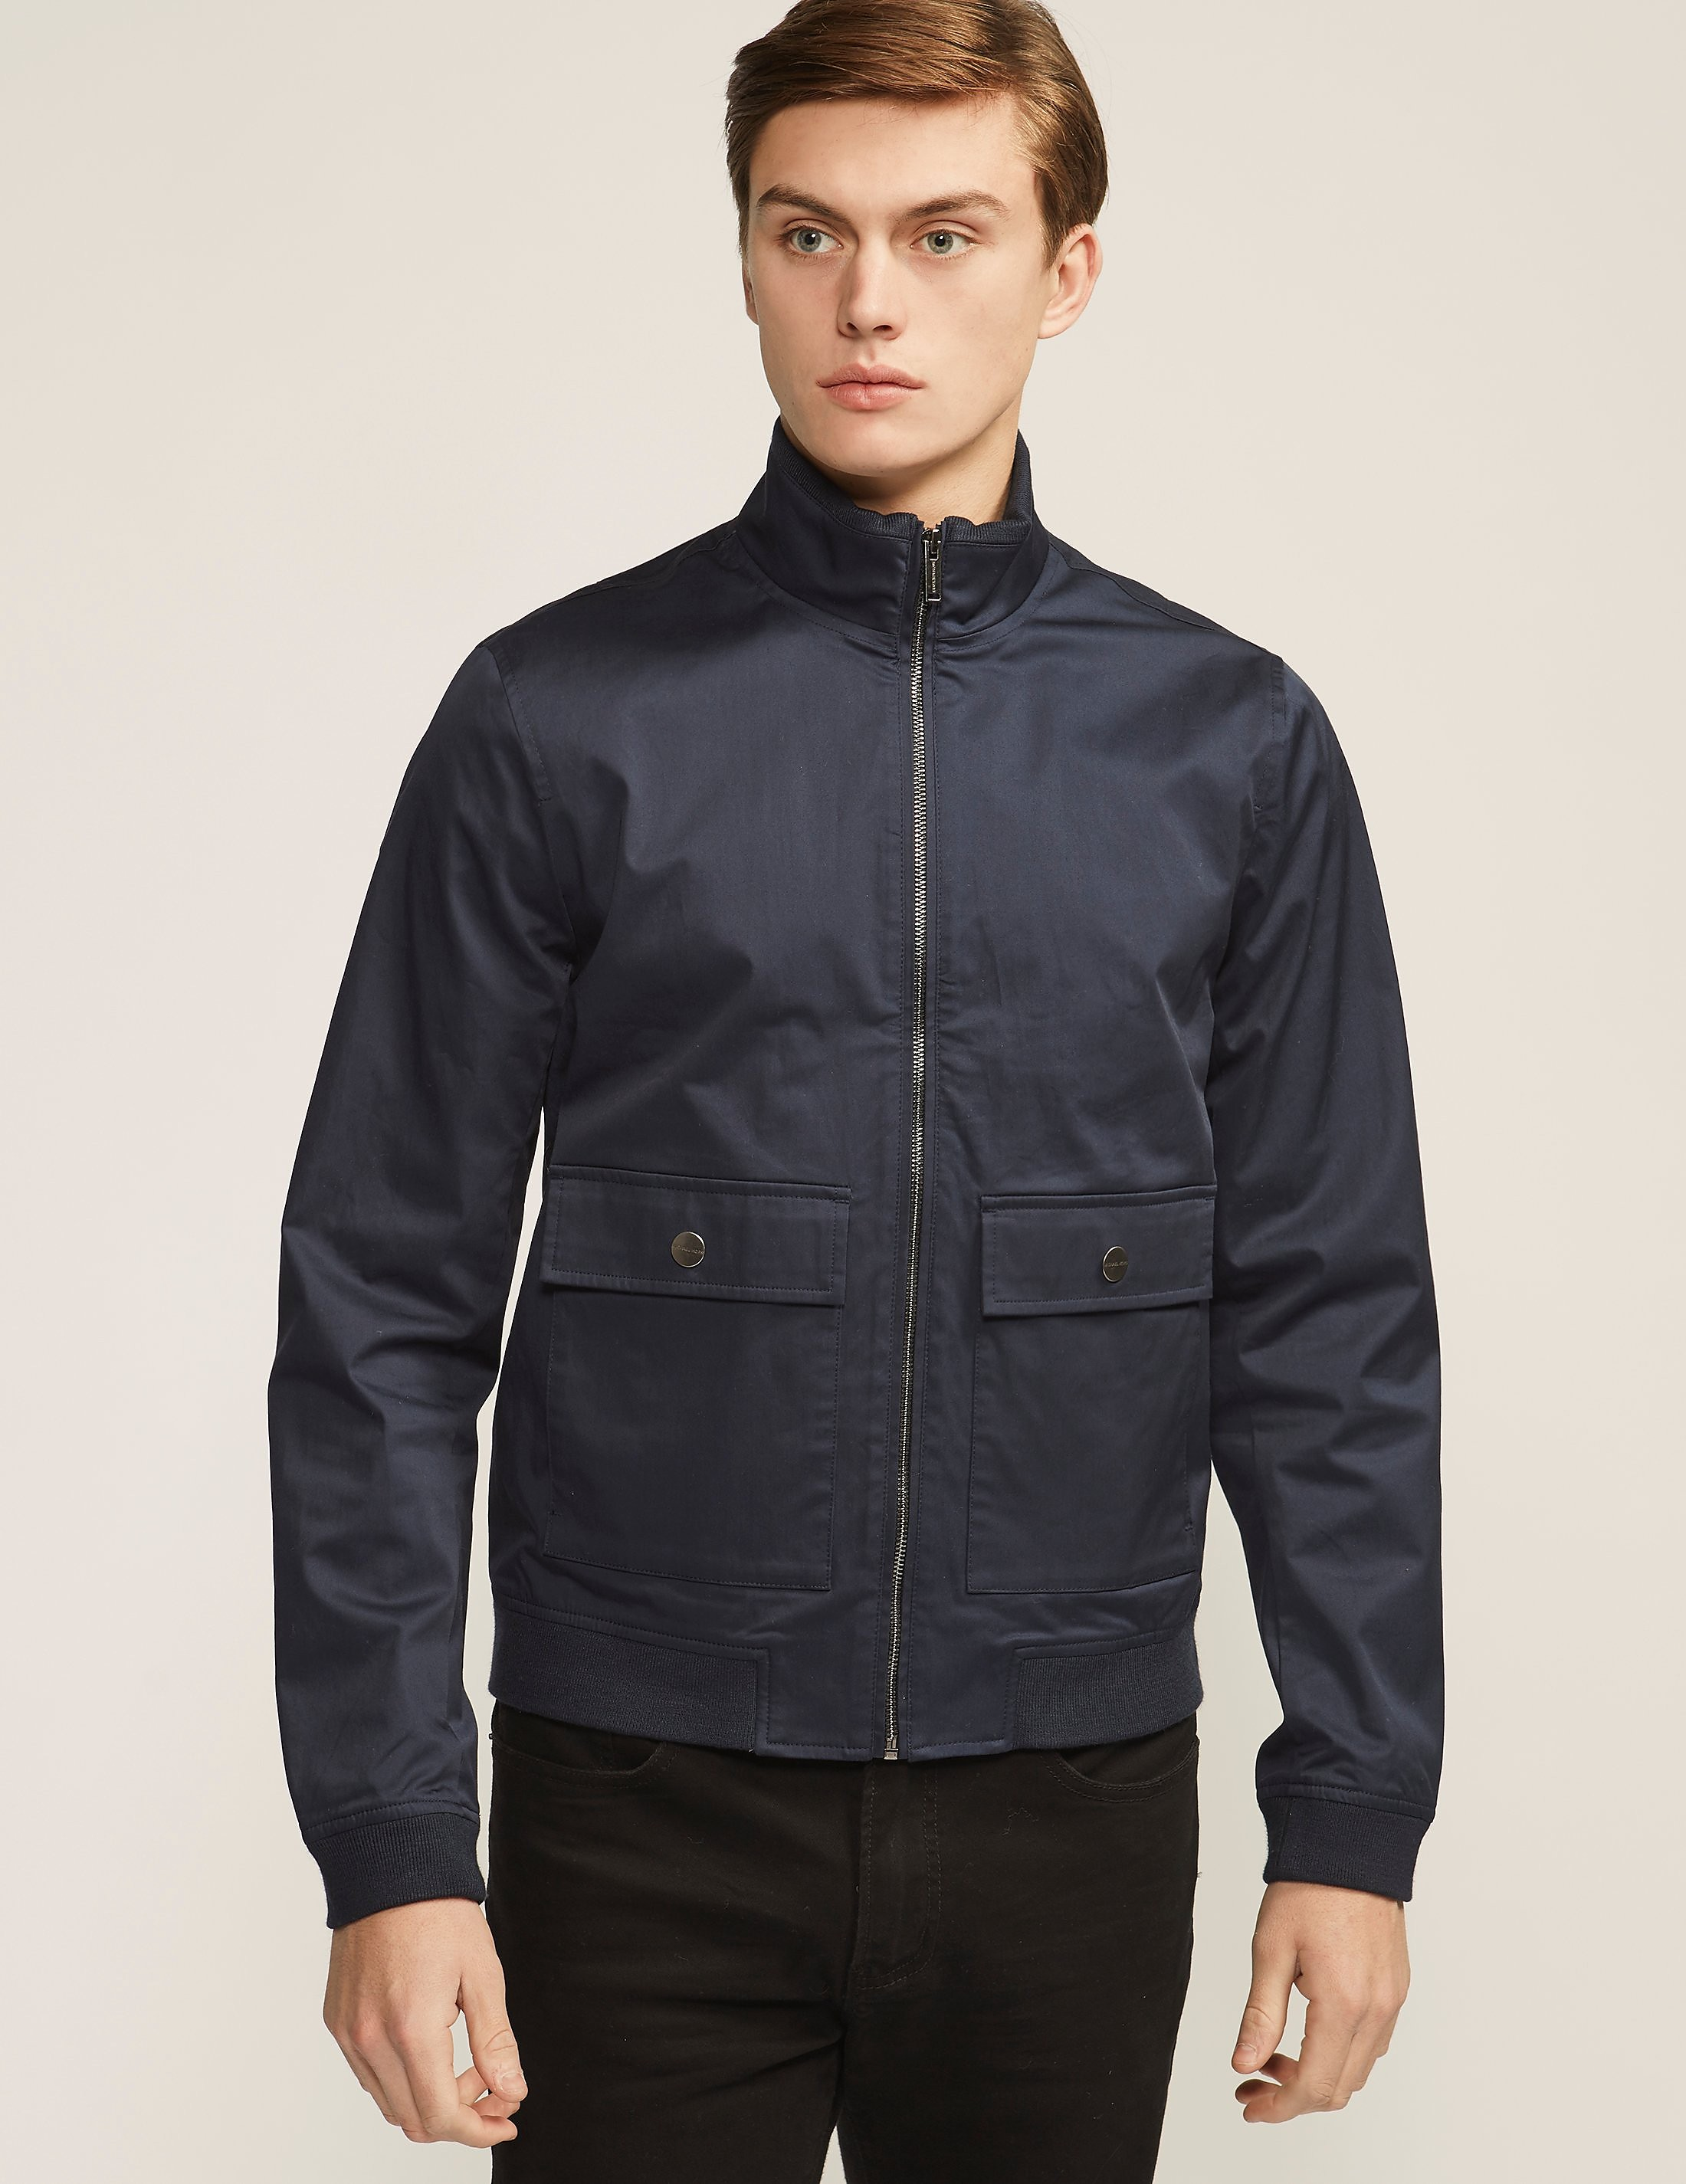 Michael Kors Pocket Bomber Jacket